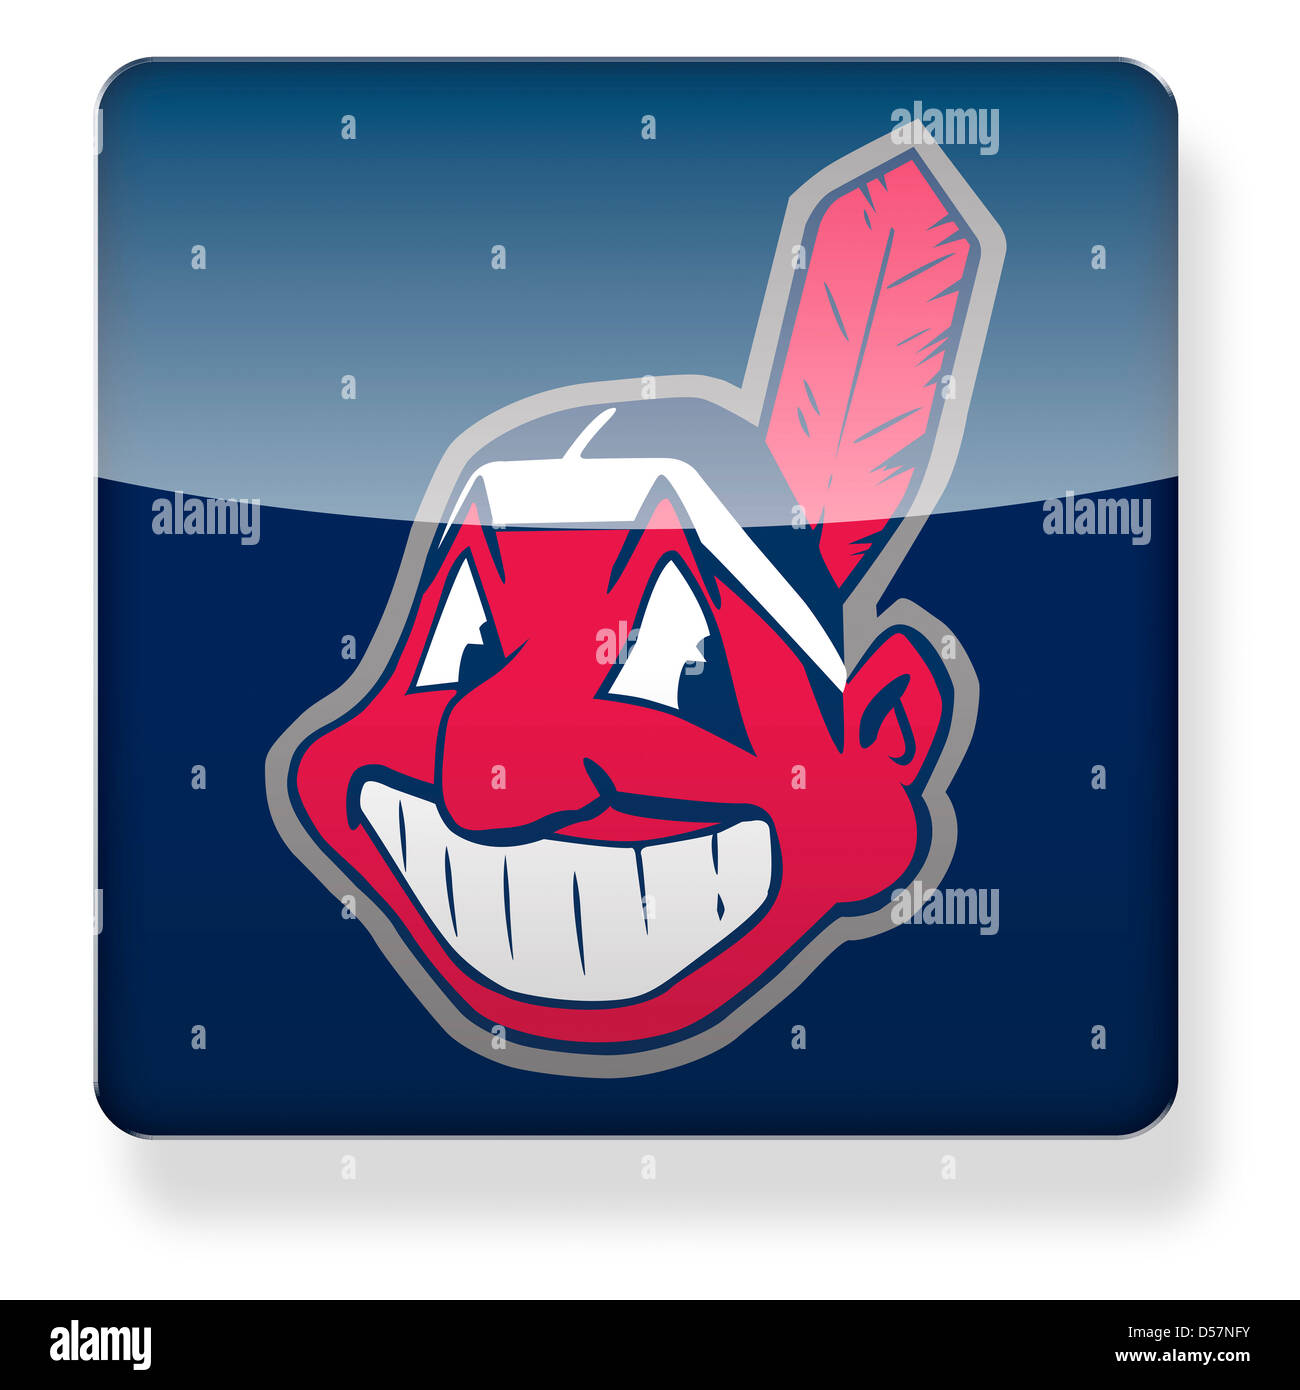 Cleveland indians stock photos cleveland indians stock images cleveland indians baseball cap logo as an app icon clipping path included stock biocorpaavc Choice Image